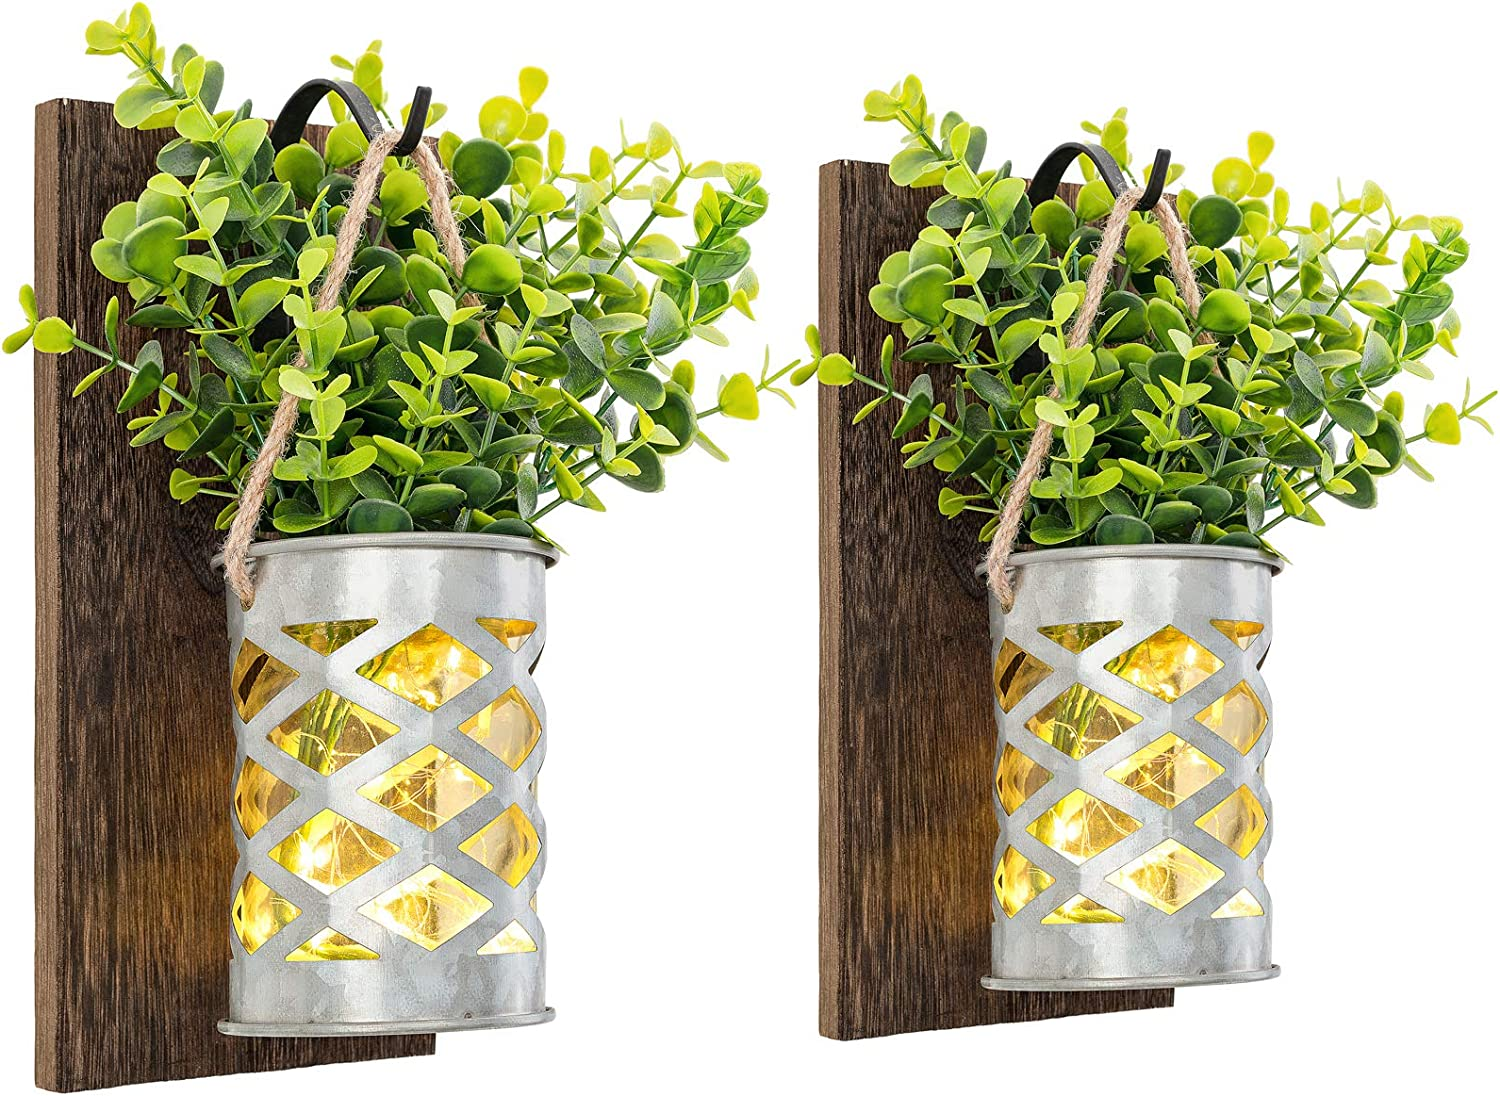 Mkono Mason Jar Sconces Wall Decor Set of 2 Fairy Lights Wall Hanging Sconces Rustic with Galvanized Vase and Artificial Eucalyptus Farmhouse Sconce Fall Wall Decor for Bedroom Living Room Kitchen